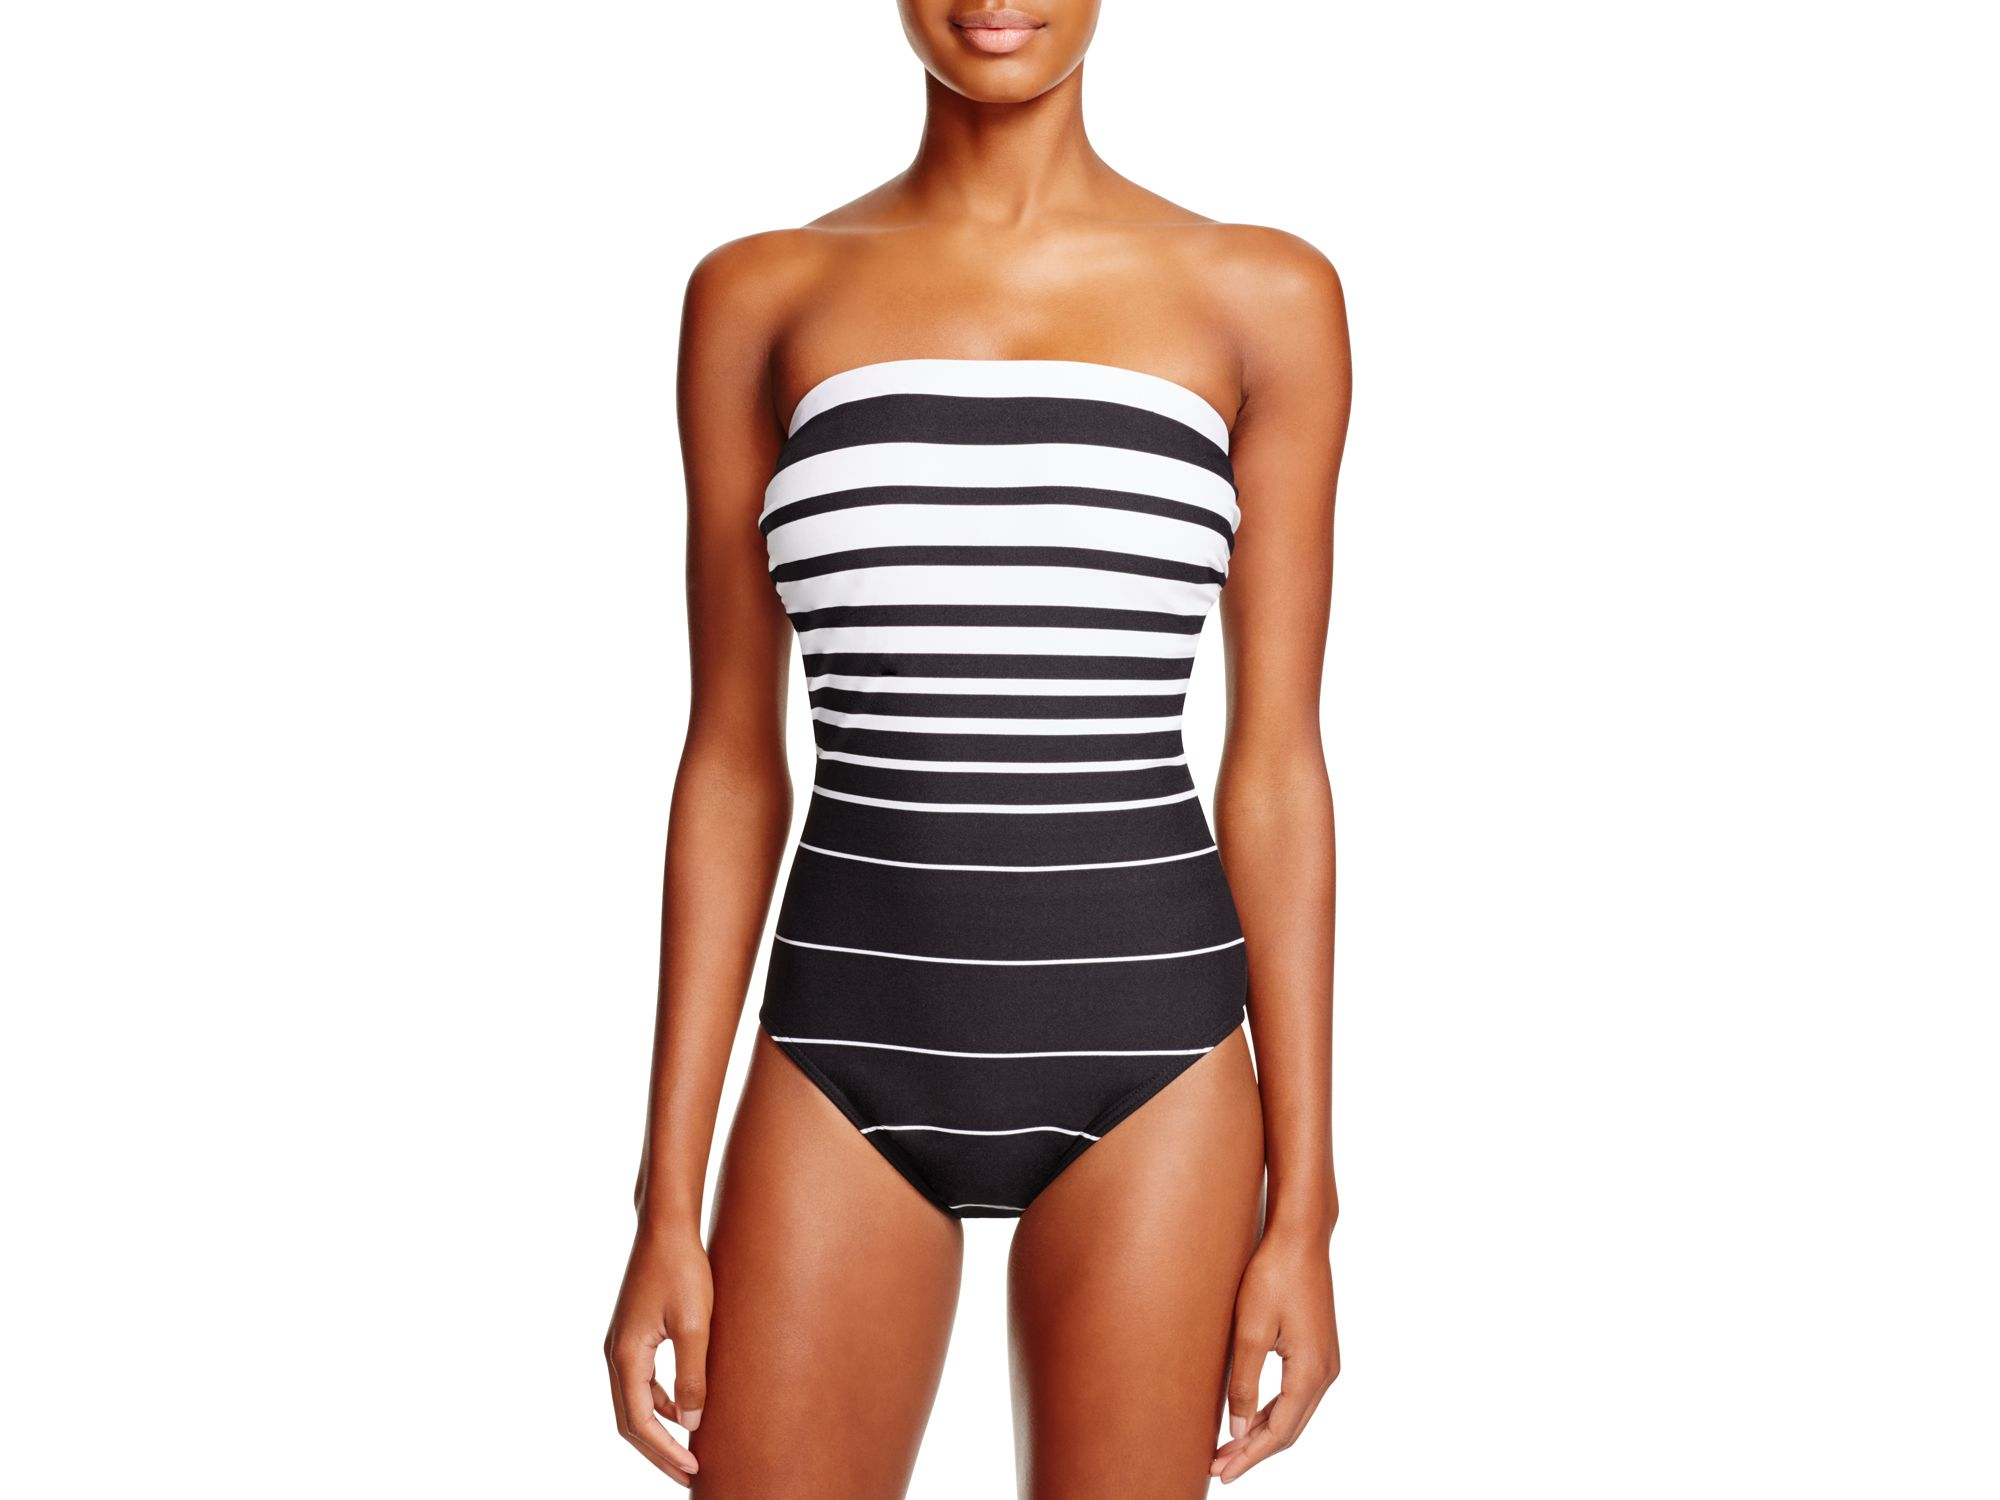 ddeac3bde7 Lyst - Miraclesuit Right Down The Line Avanti One Piece Swimsuit in ...